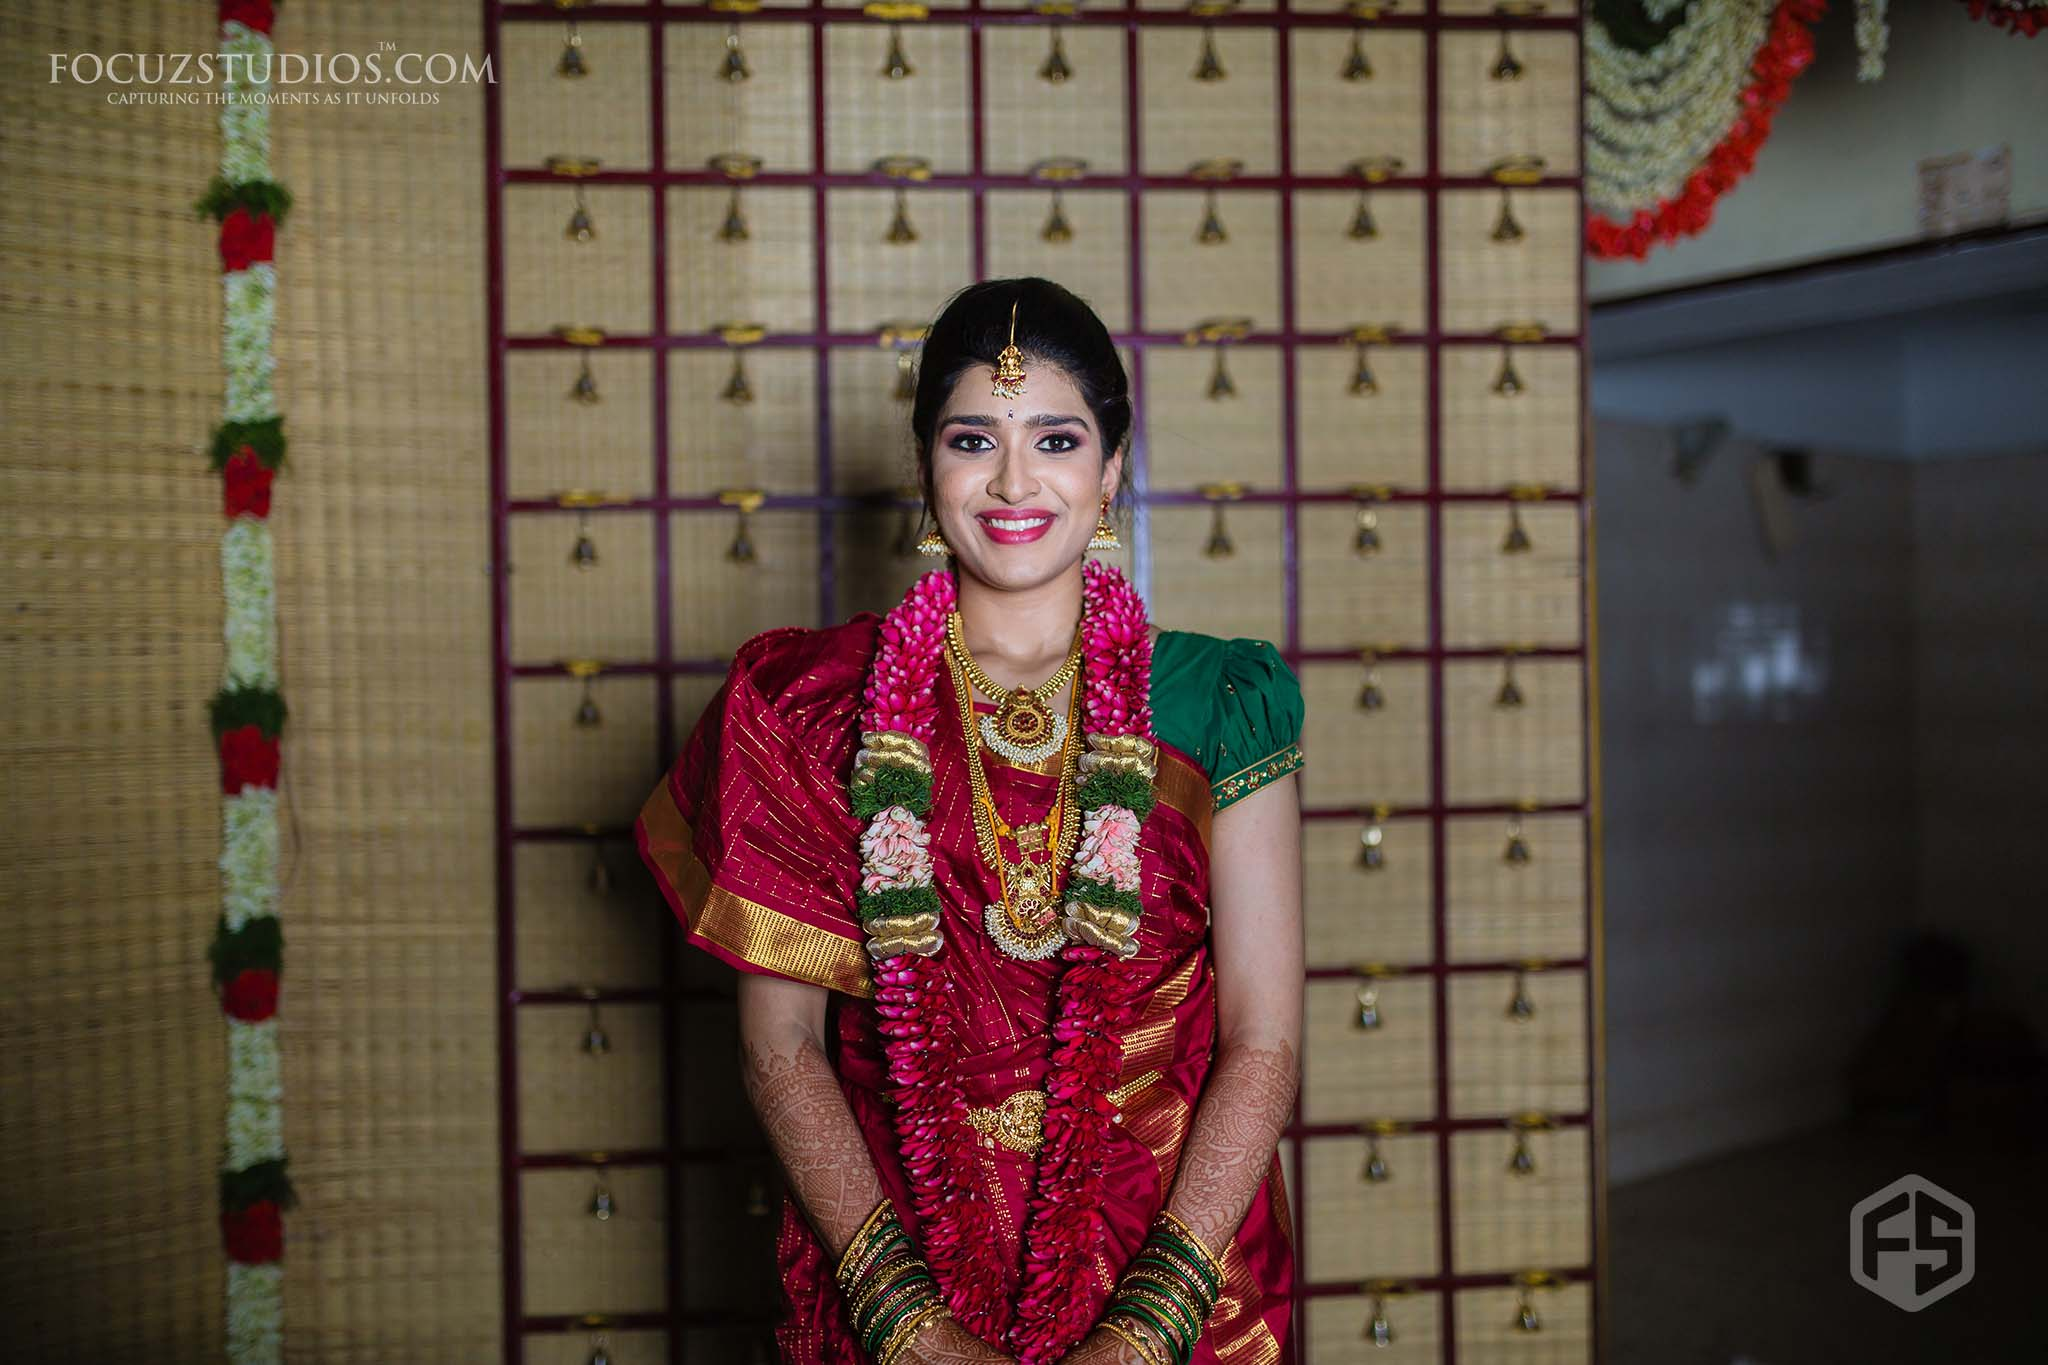 brahmin-wedding-photographers-focuz-studios11